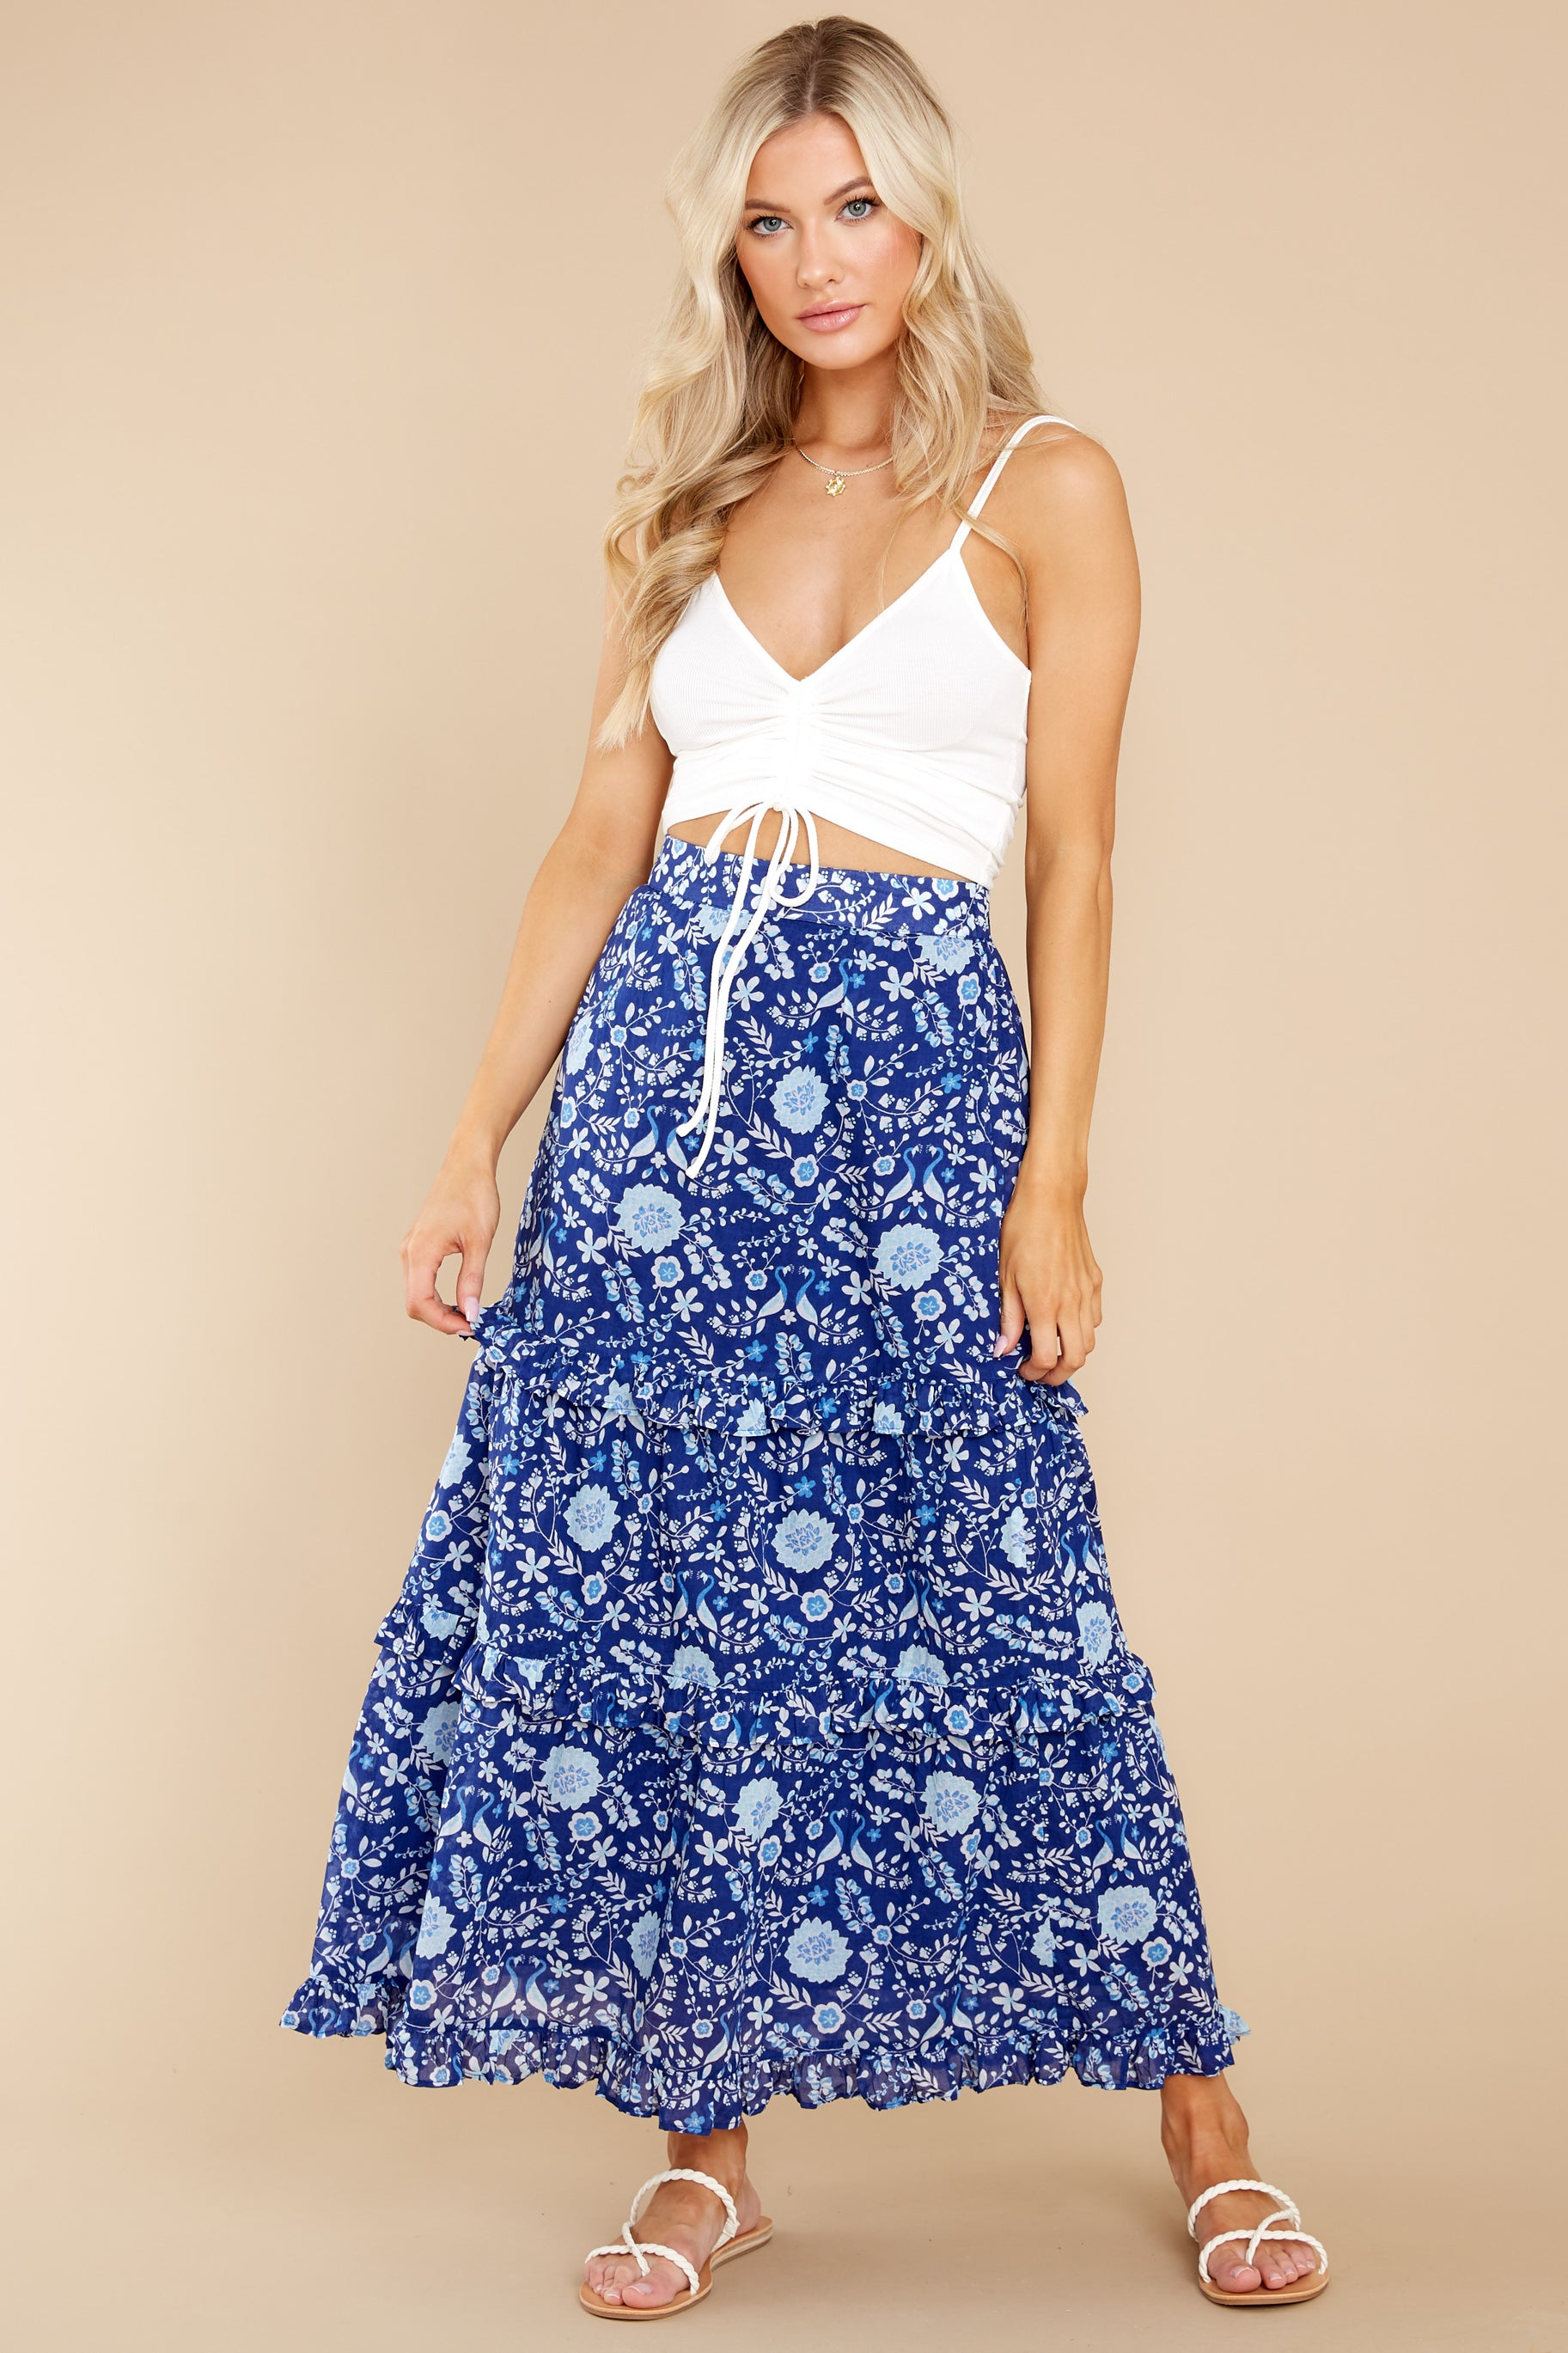 5 Lindsay Peacock Floral Indigo Skirt at reddress.com